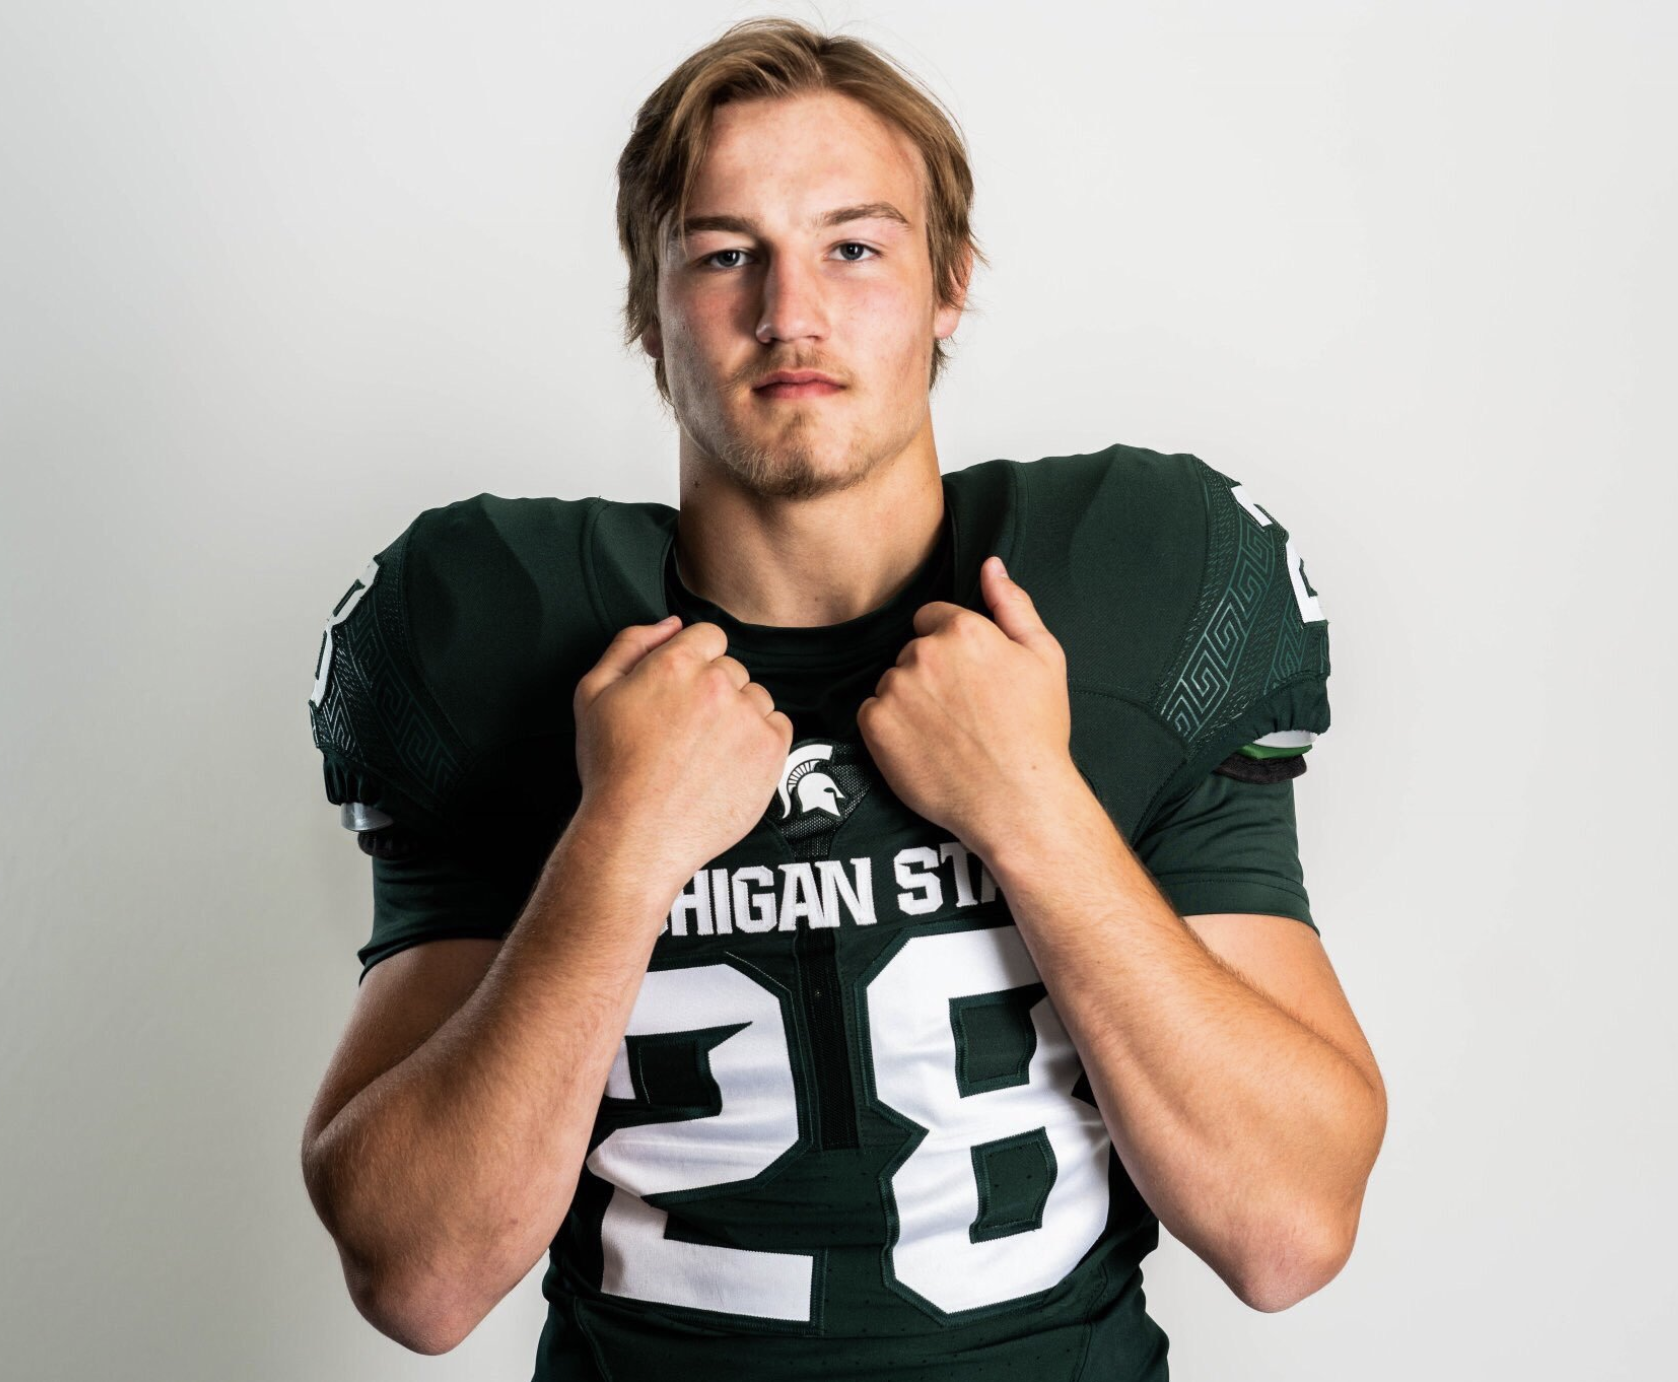 '20 Michigan State Commit Cal Haladay (LB) Highlights and Evaluation